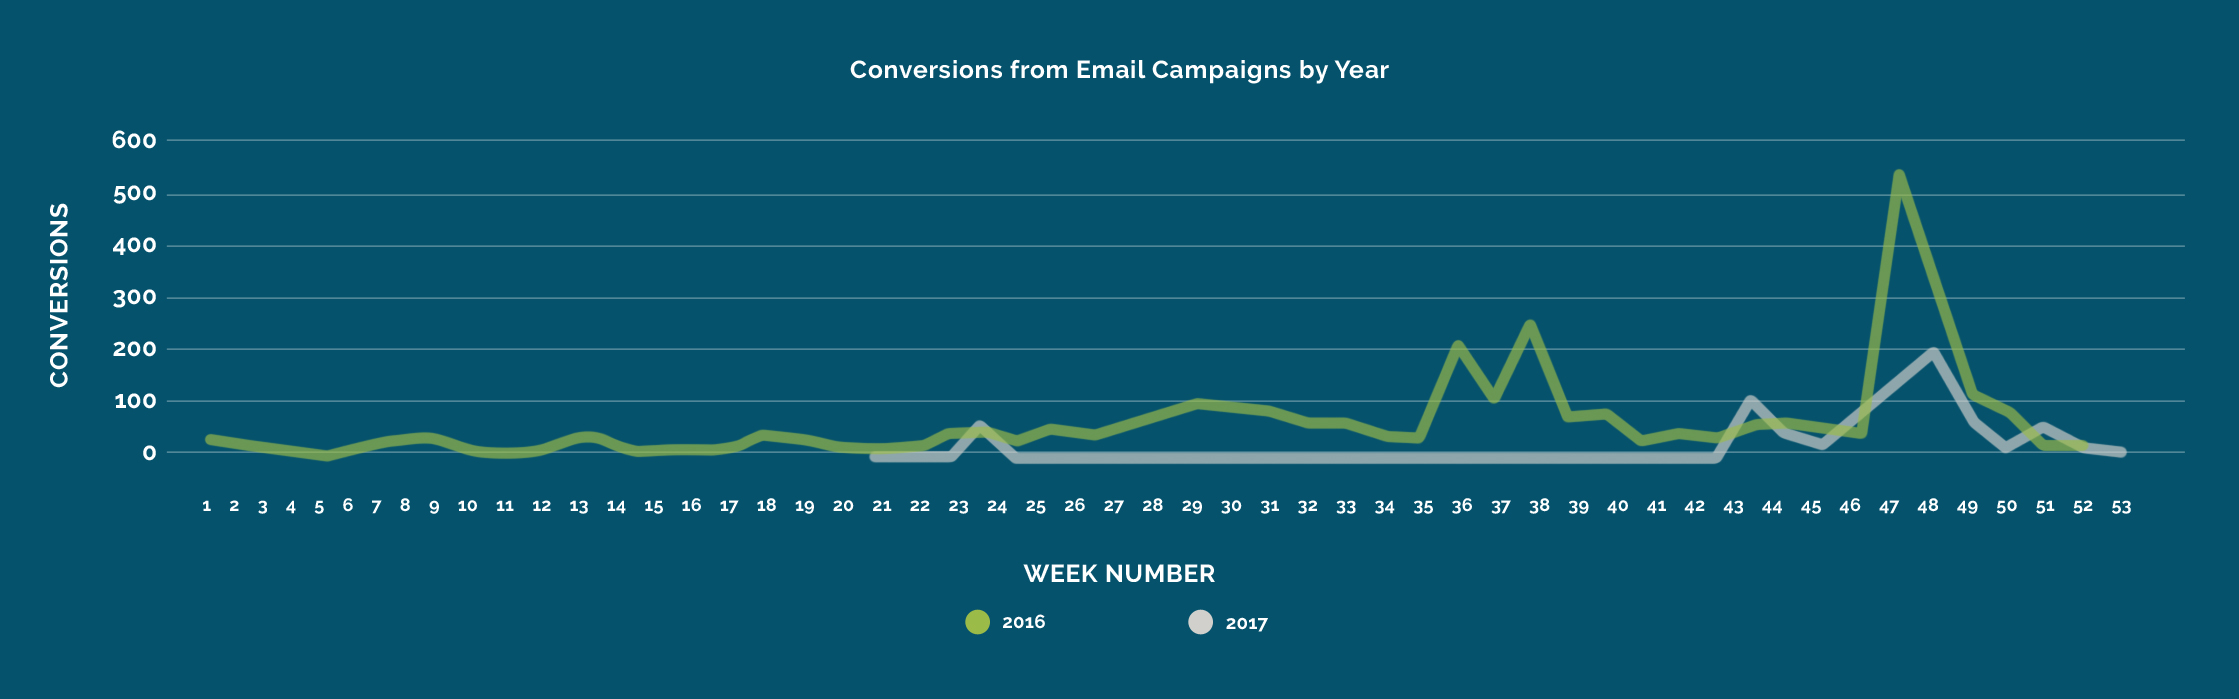 Conversions from Email Campaigns by Year